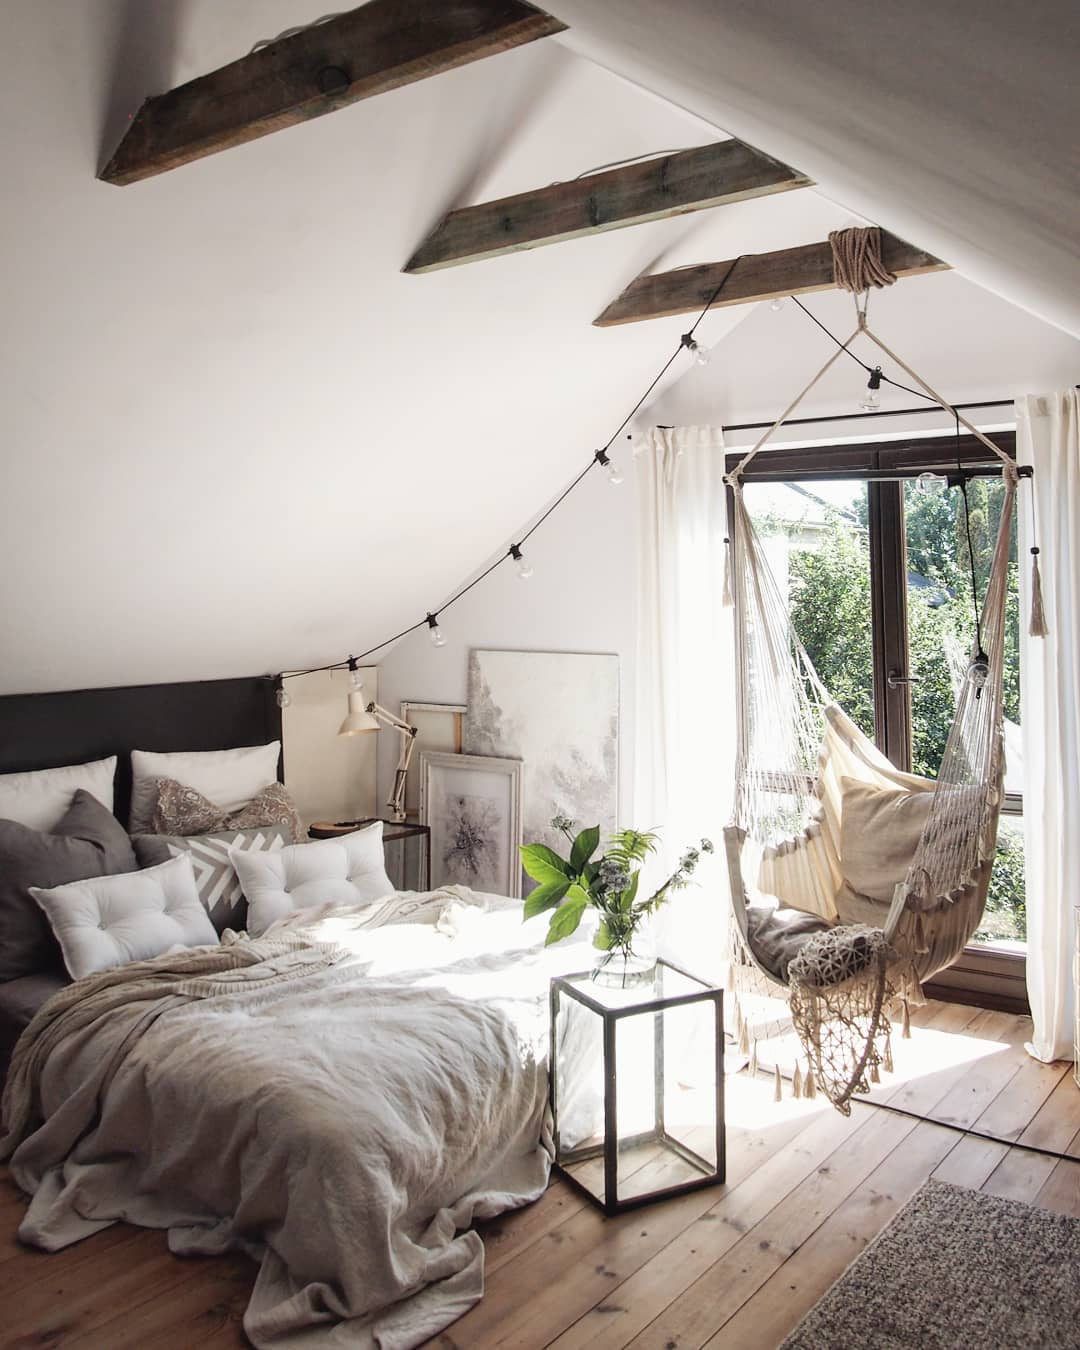 Cozy Bedrooms: 51 Cozy Bedrooms With How-To Tips & Inspiration